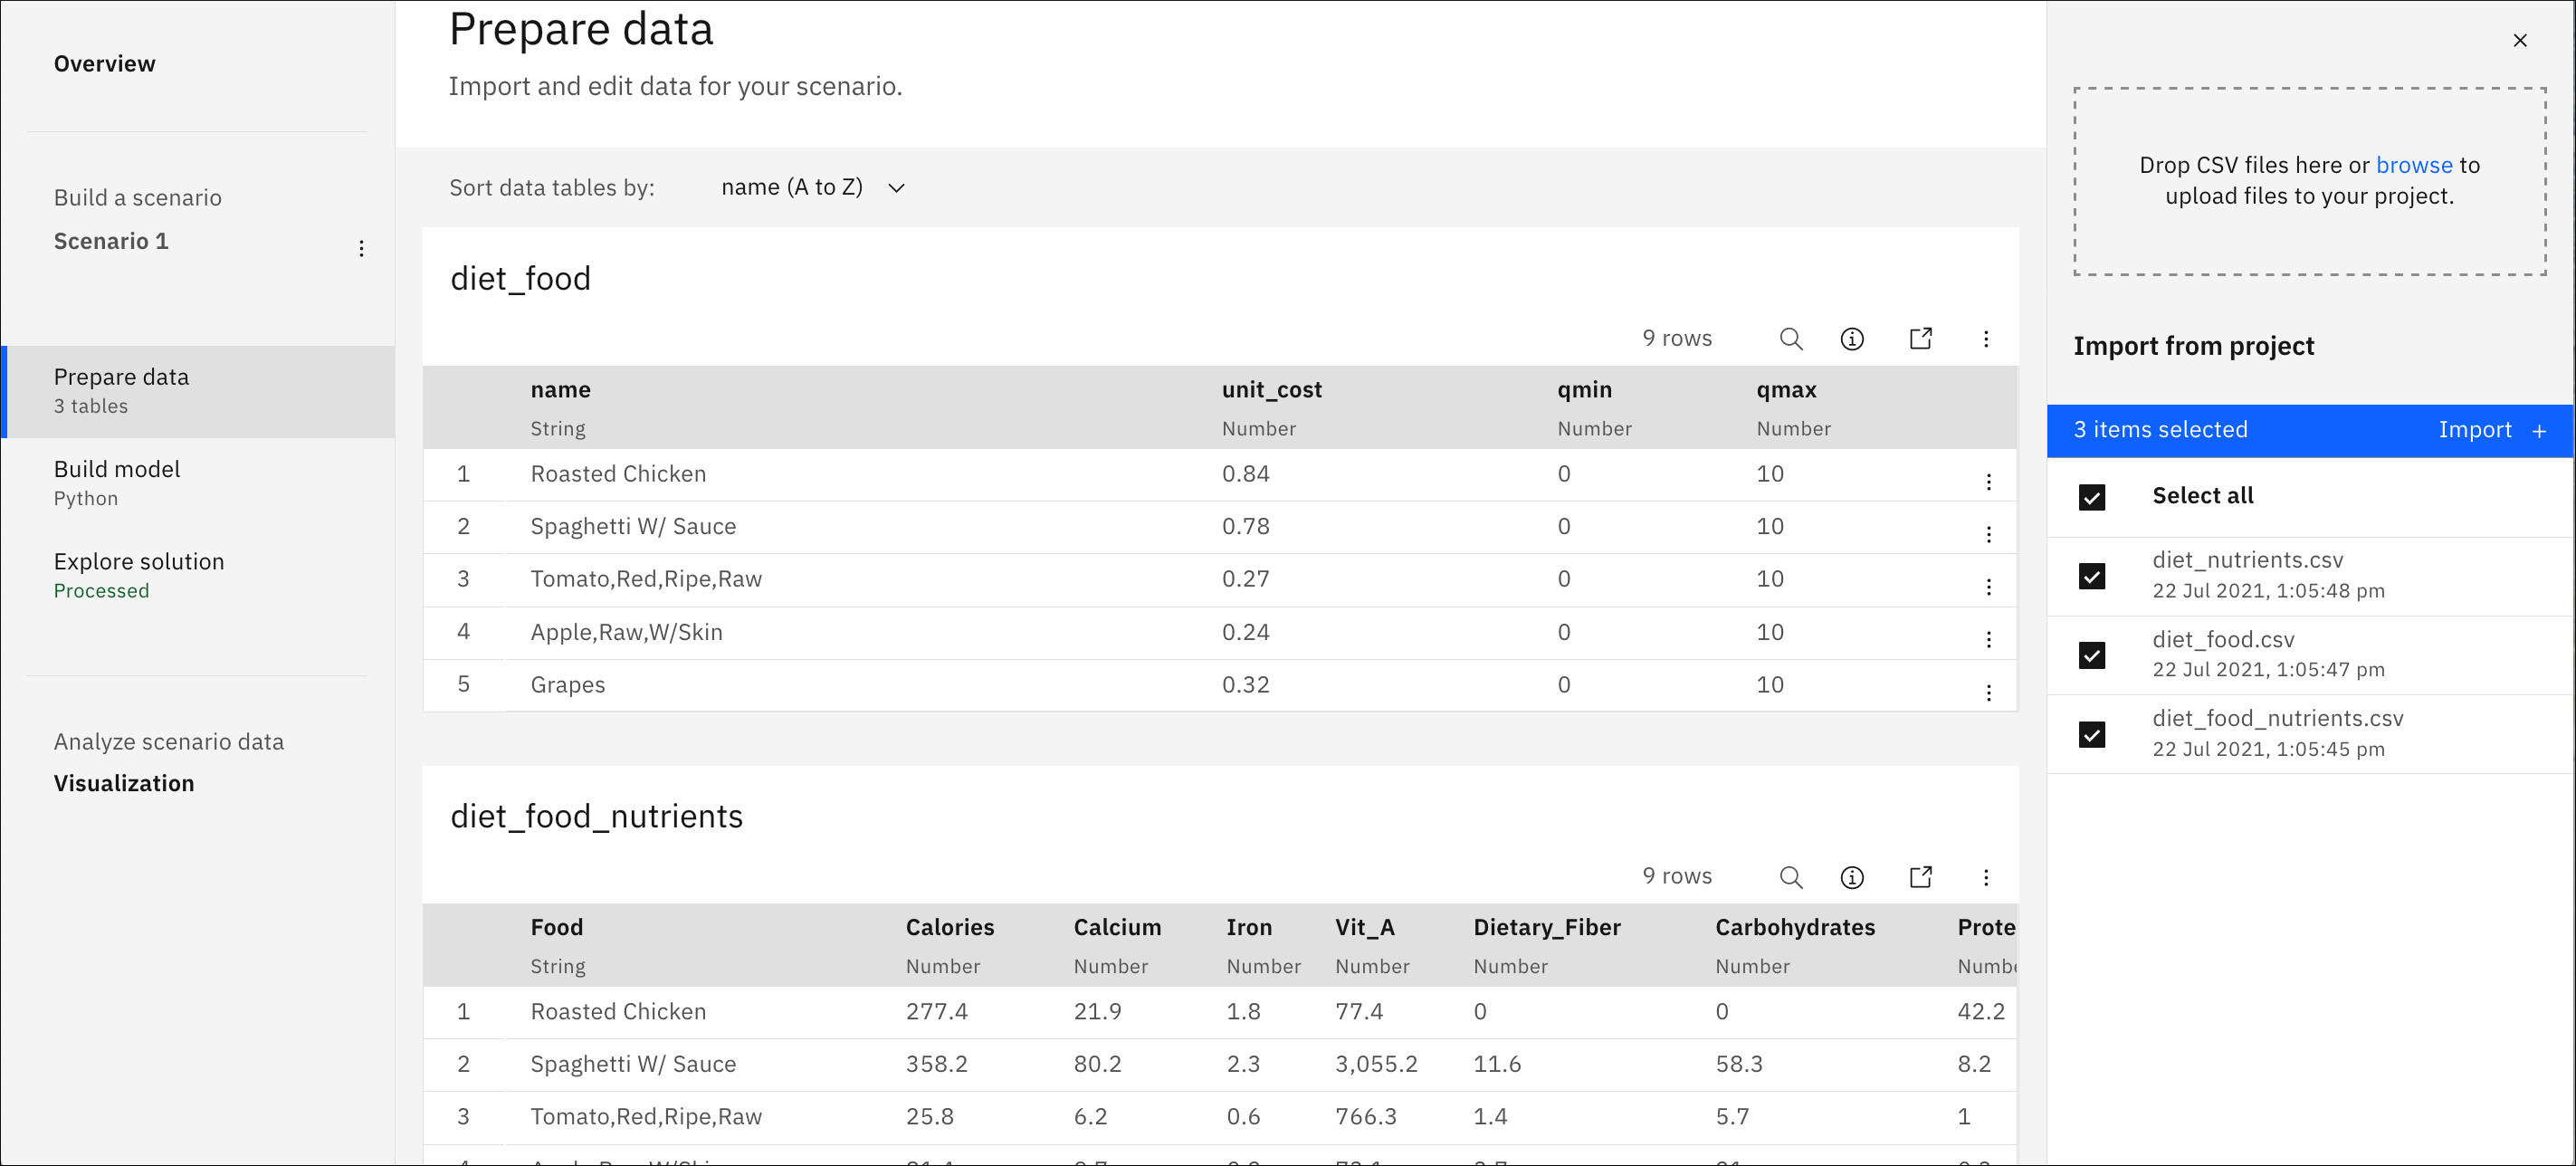 Tables of input data in Prepare data view